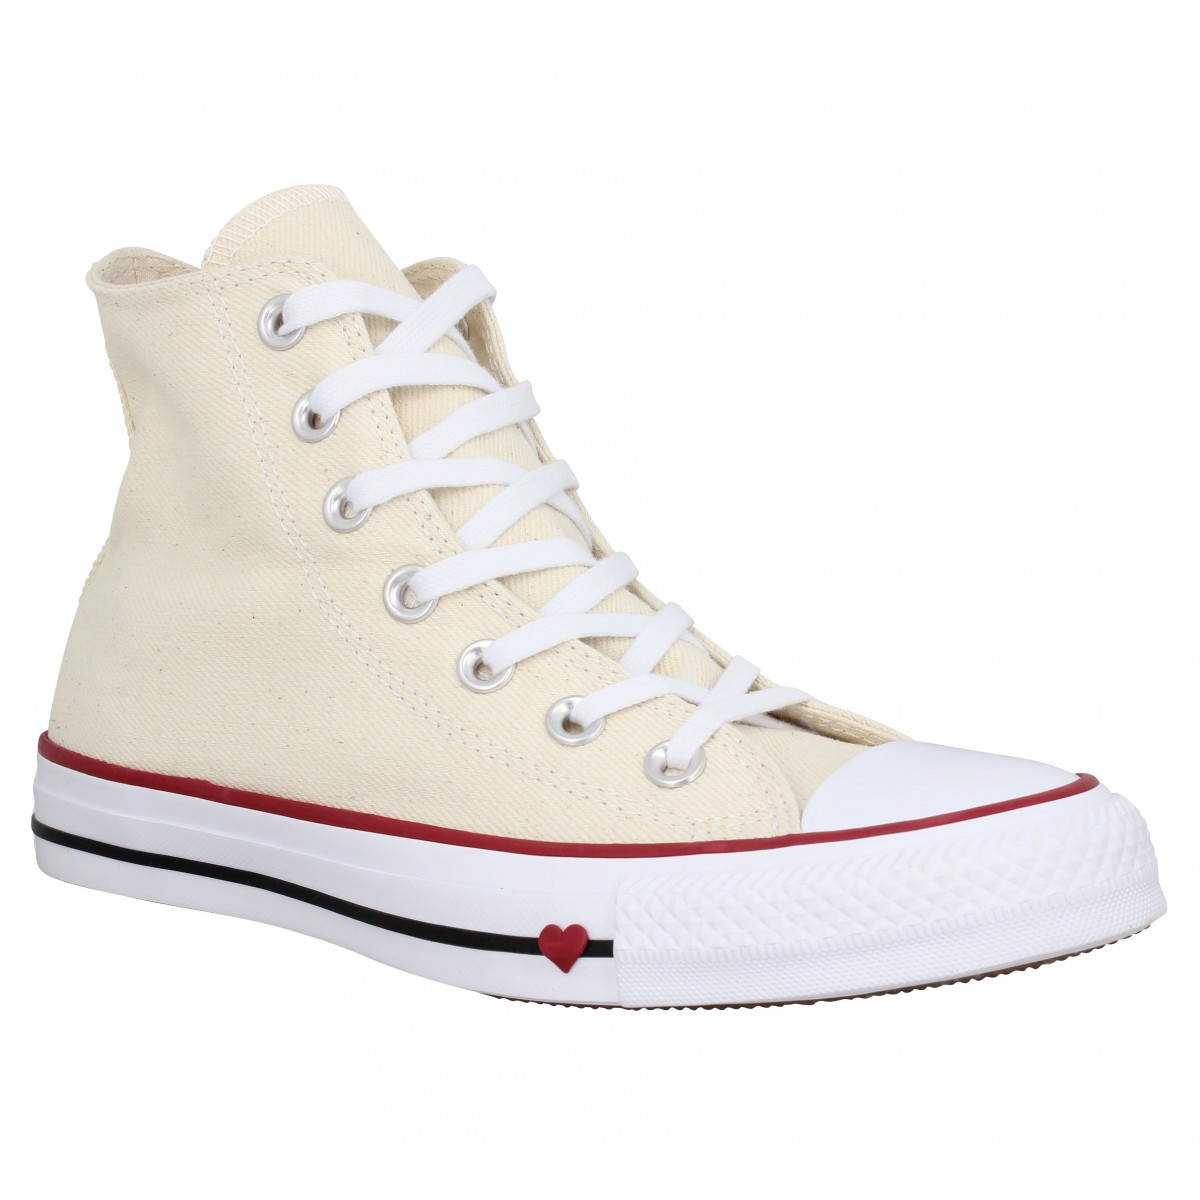 converse 159532 chuck taylor all star baskets mixte adulte